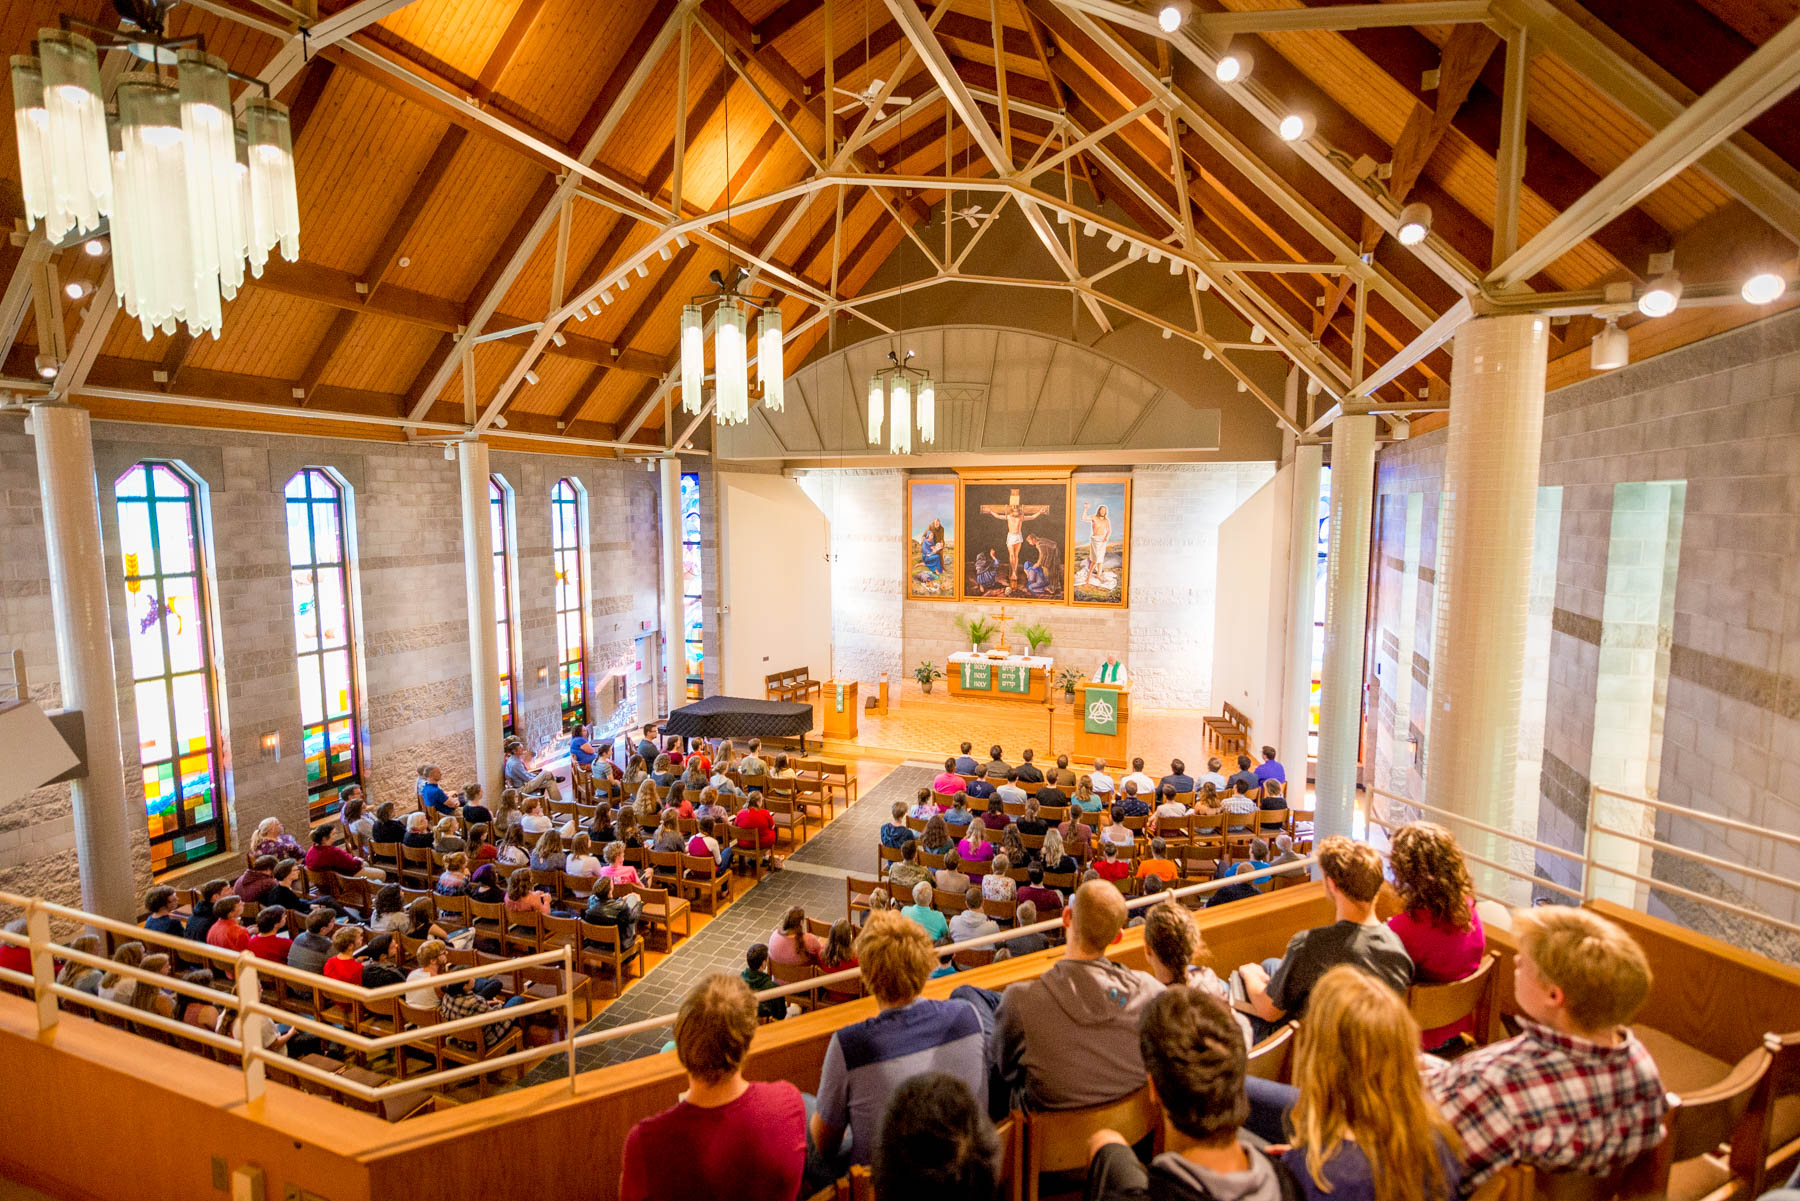 Inside Trinity Chapel during worship service